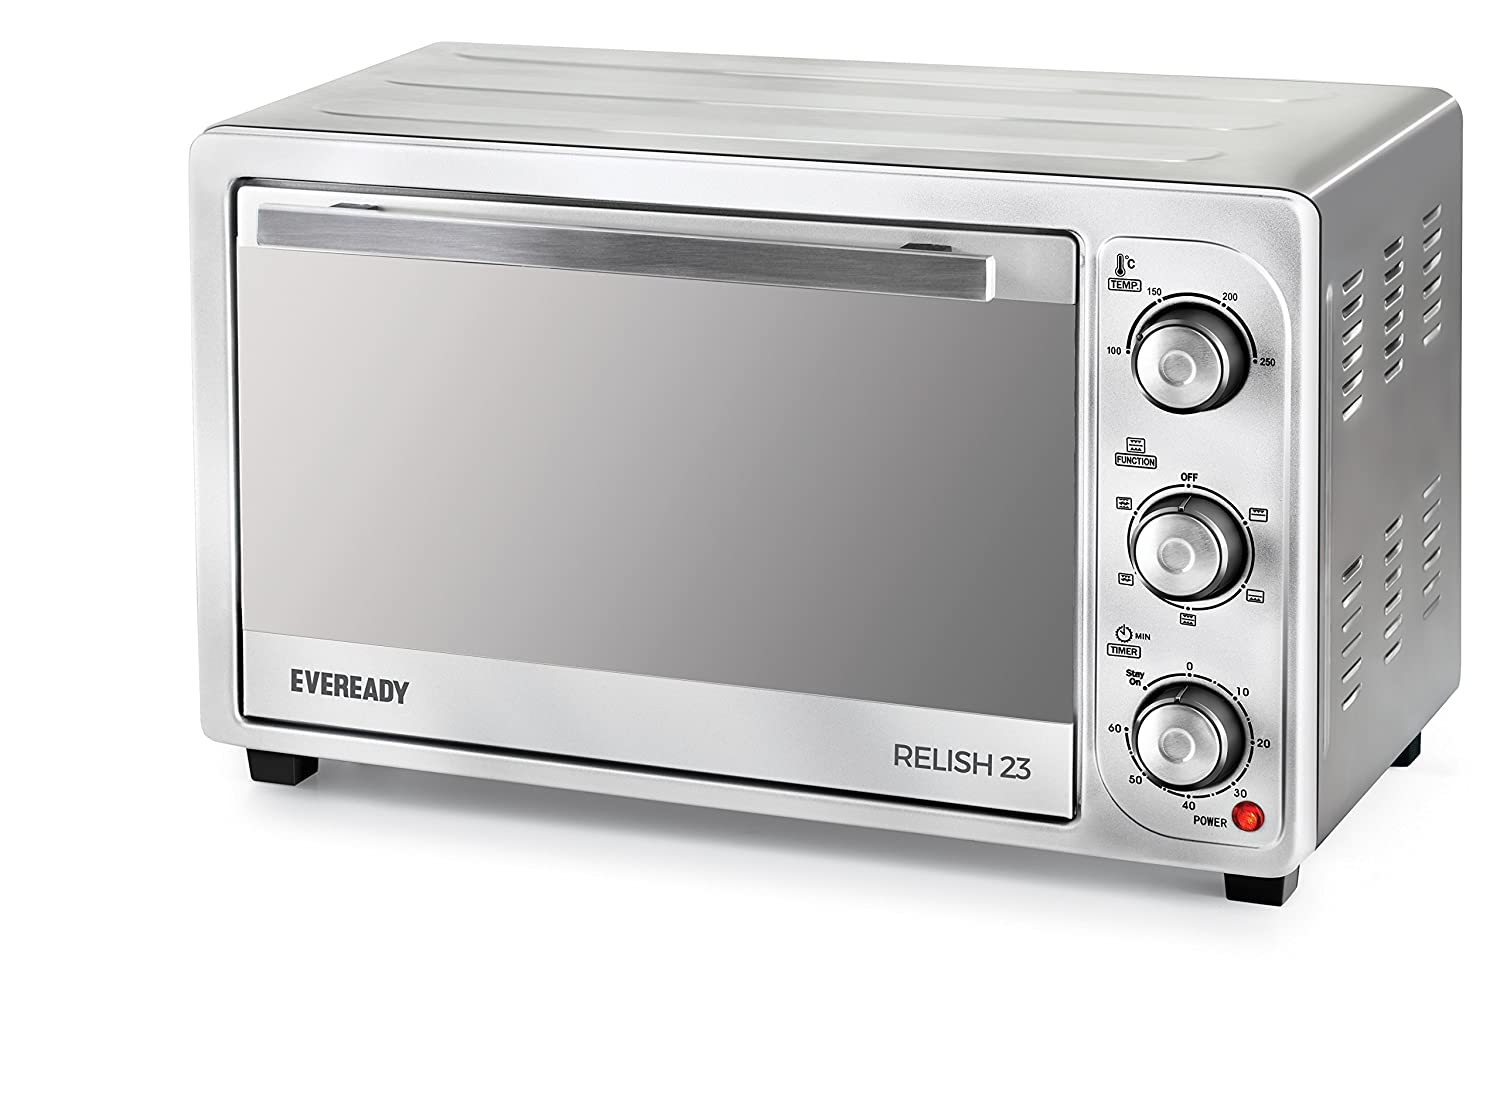 Eveready Relish 23 1380-Watt Oven Toaster Grill (Silver)